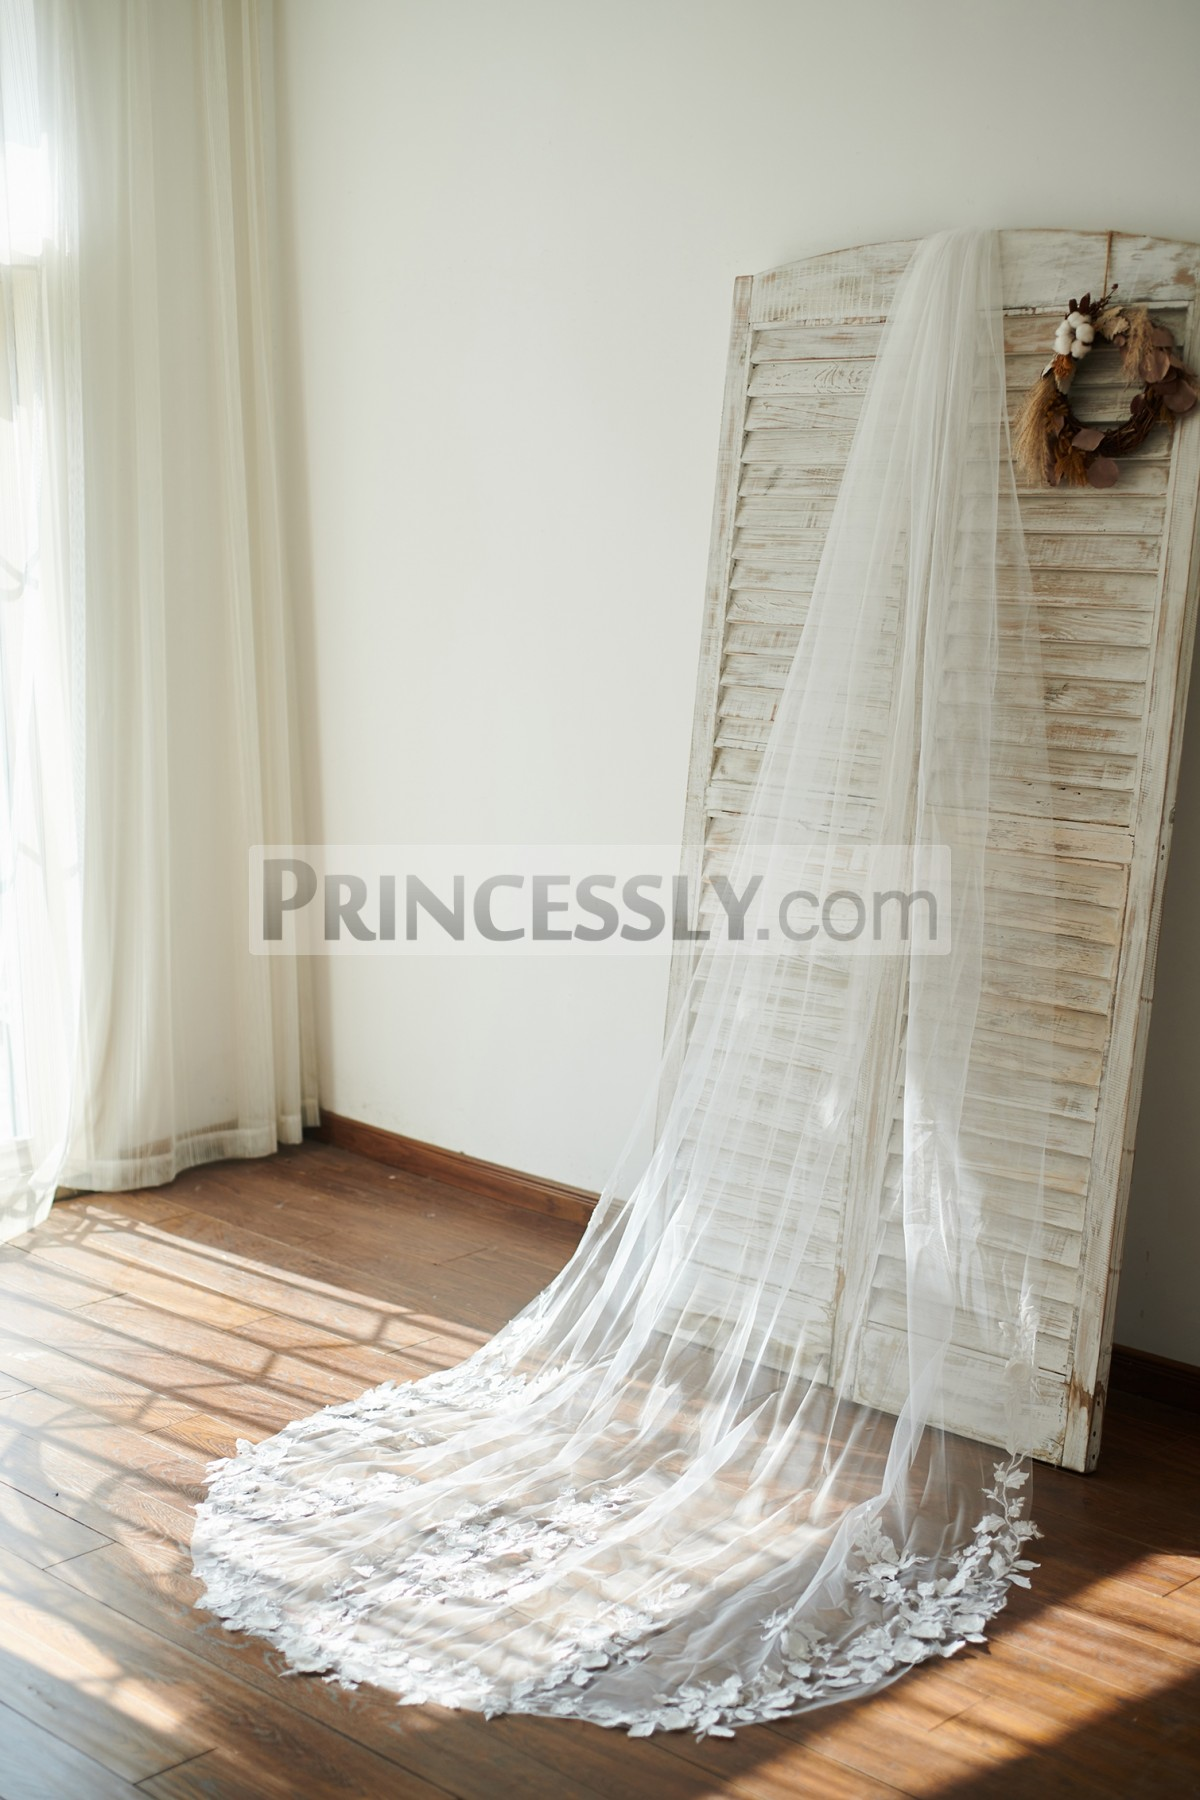 Princessly.com-K1003861-Cathedral Long Tulle 3D Flowers Wedding Veil Bridal Veil-31